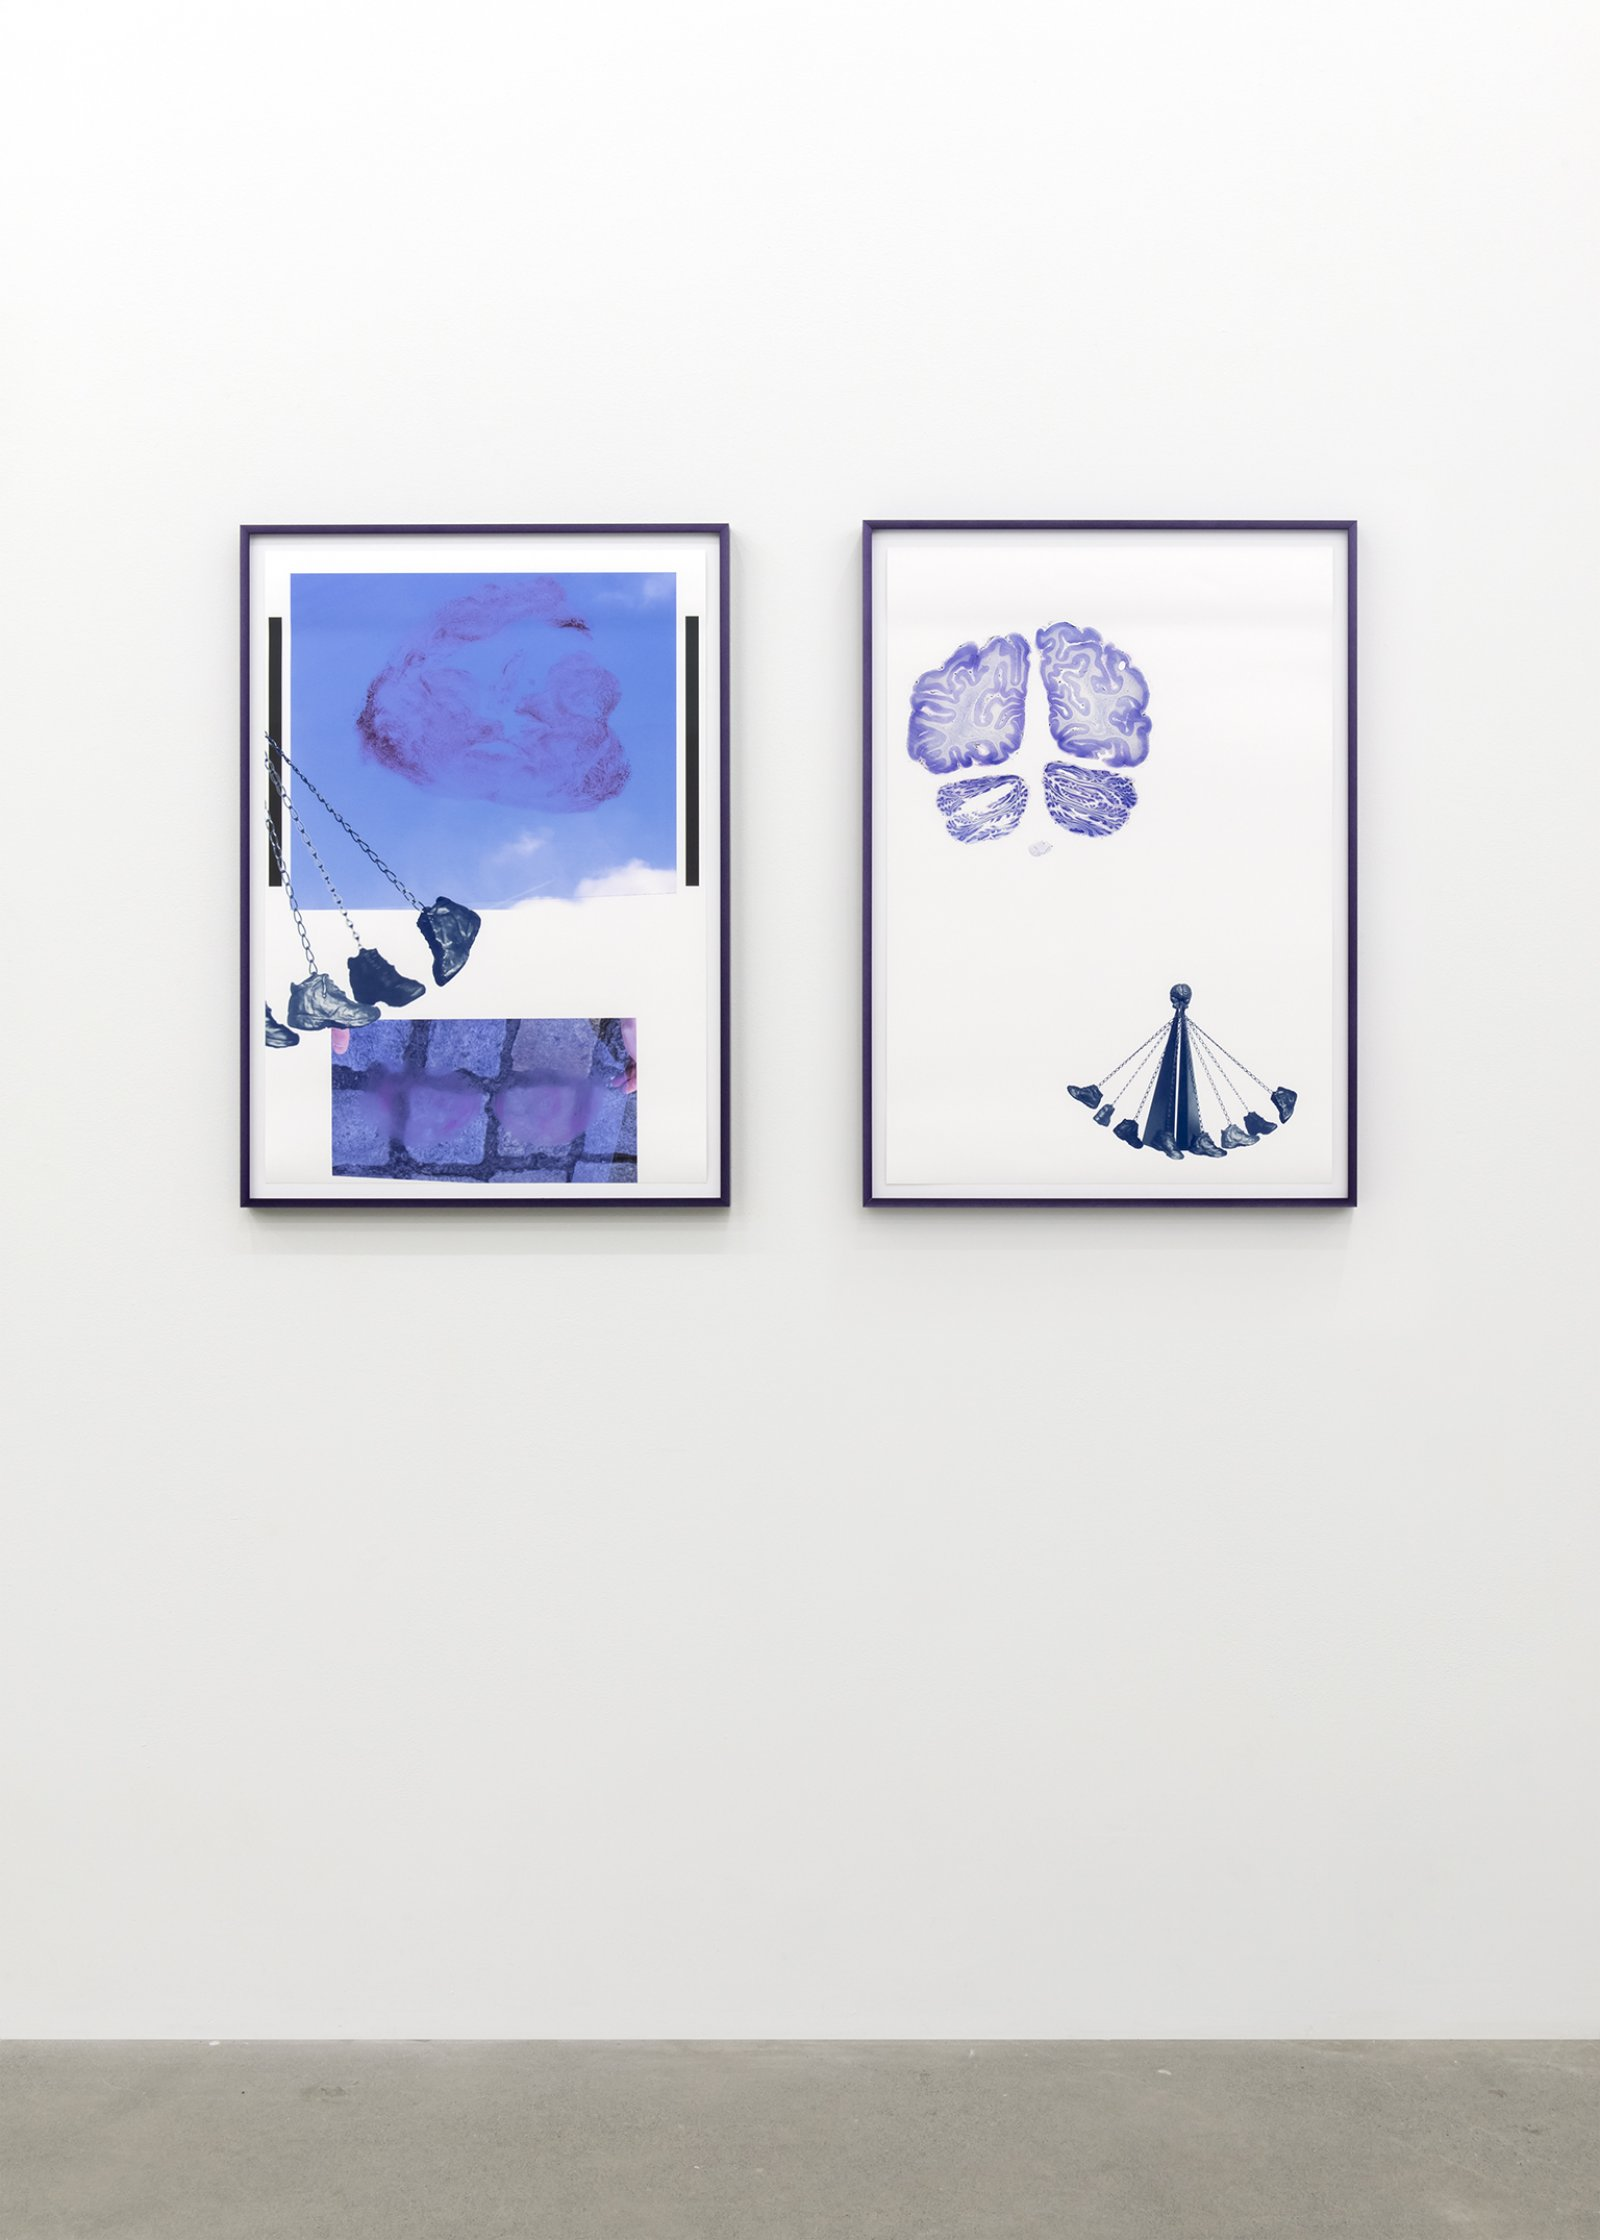 ​Judy Radul, End of the Autopsy (Brain and Boot), 2018, inkjet prints on paper, frames, diptych, each 32 x 22 in. (85 x 56 cm) by Judy Radul